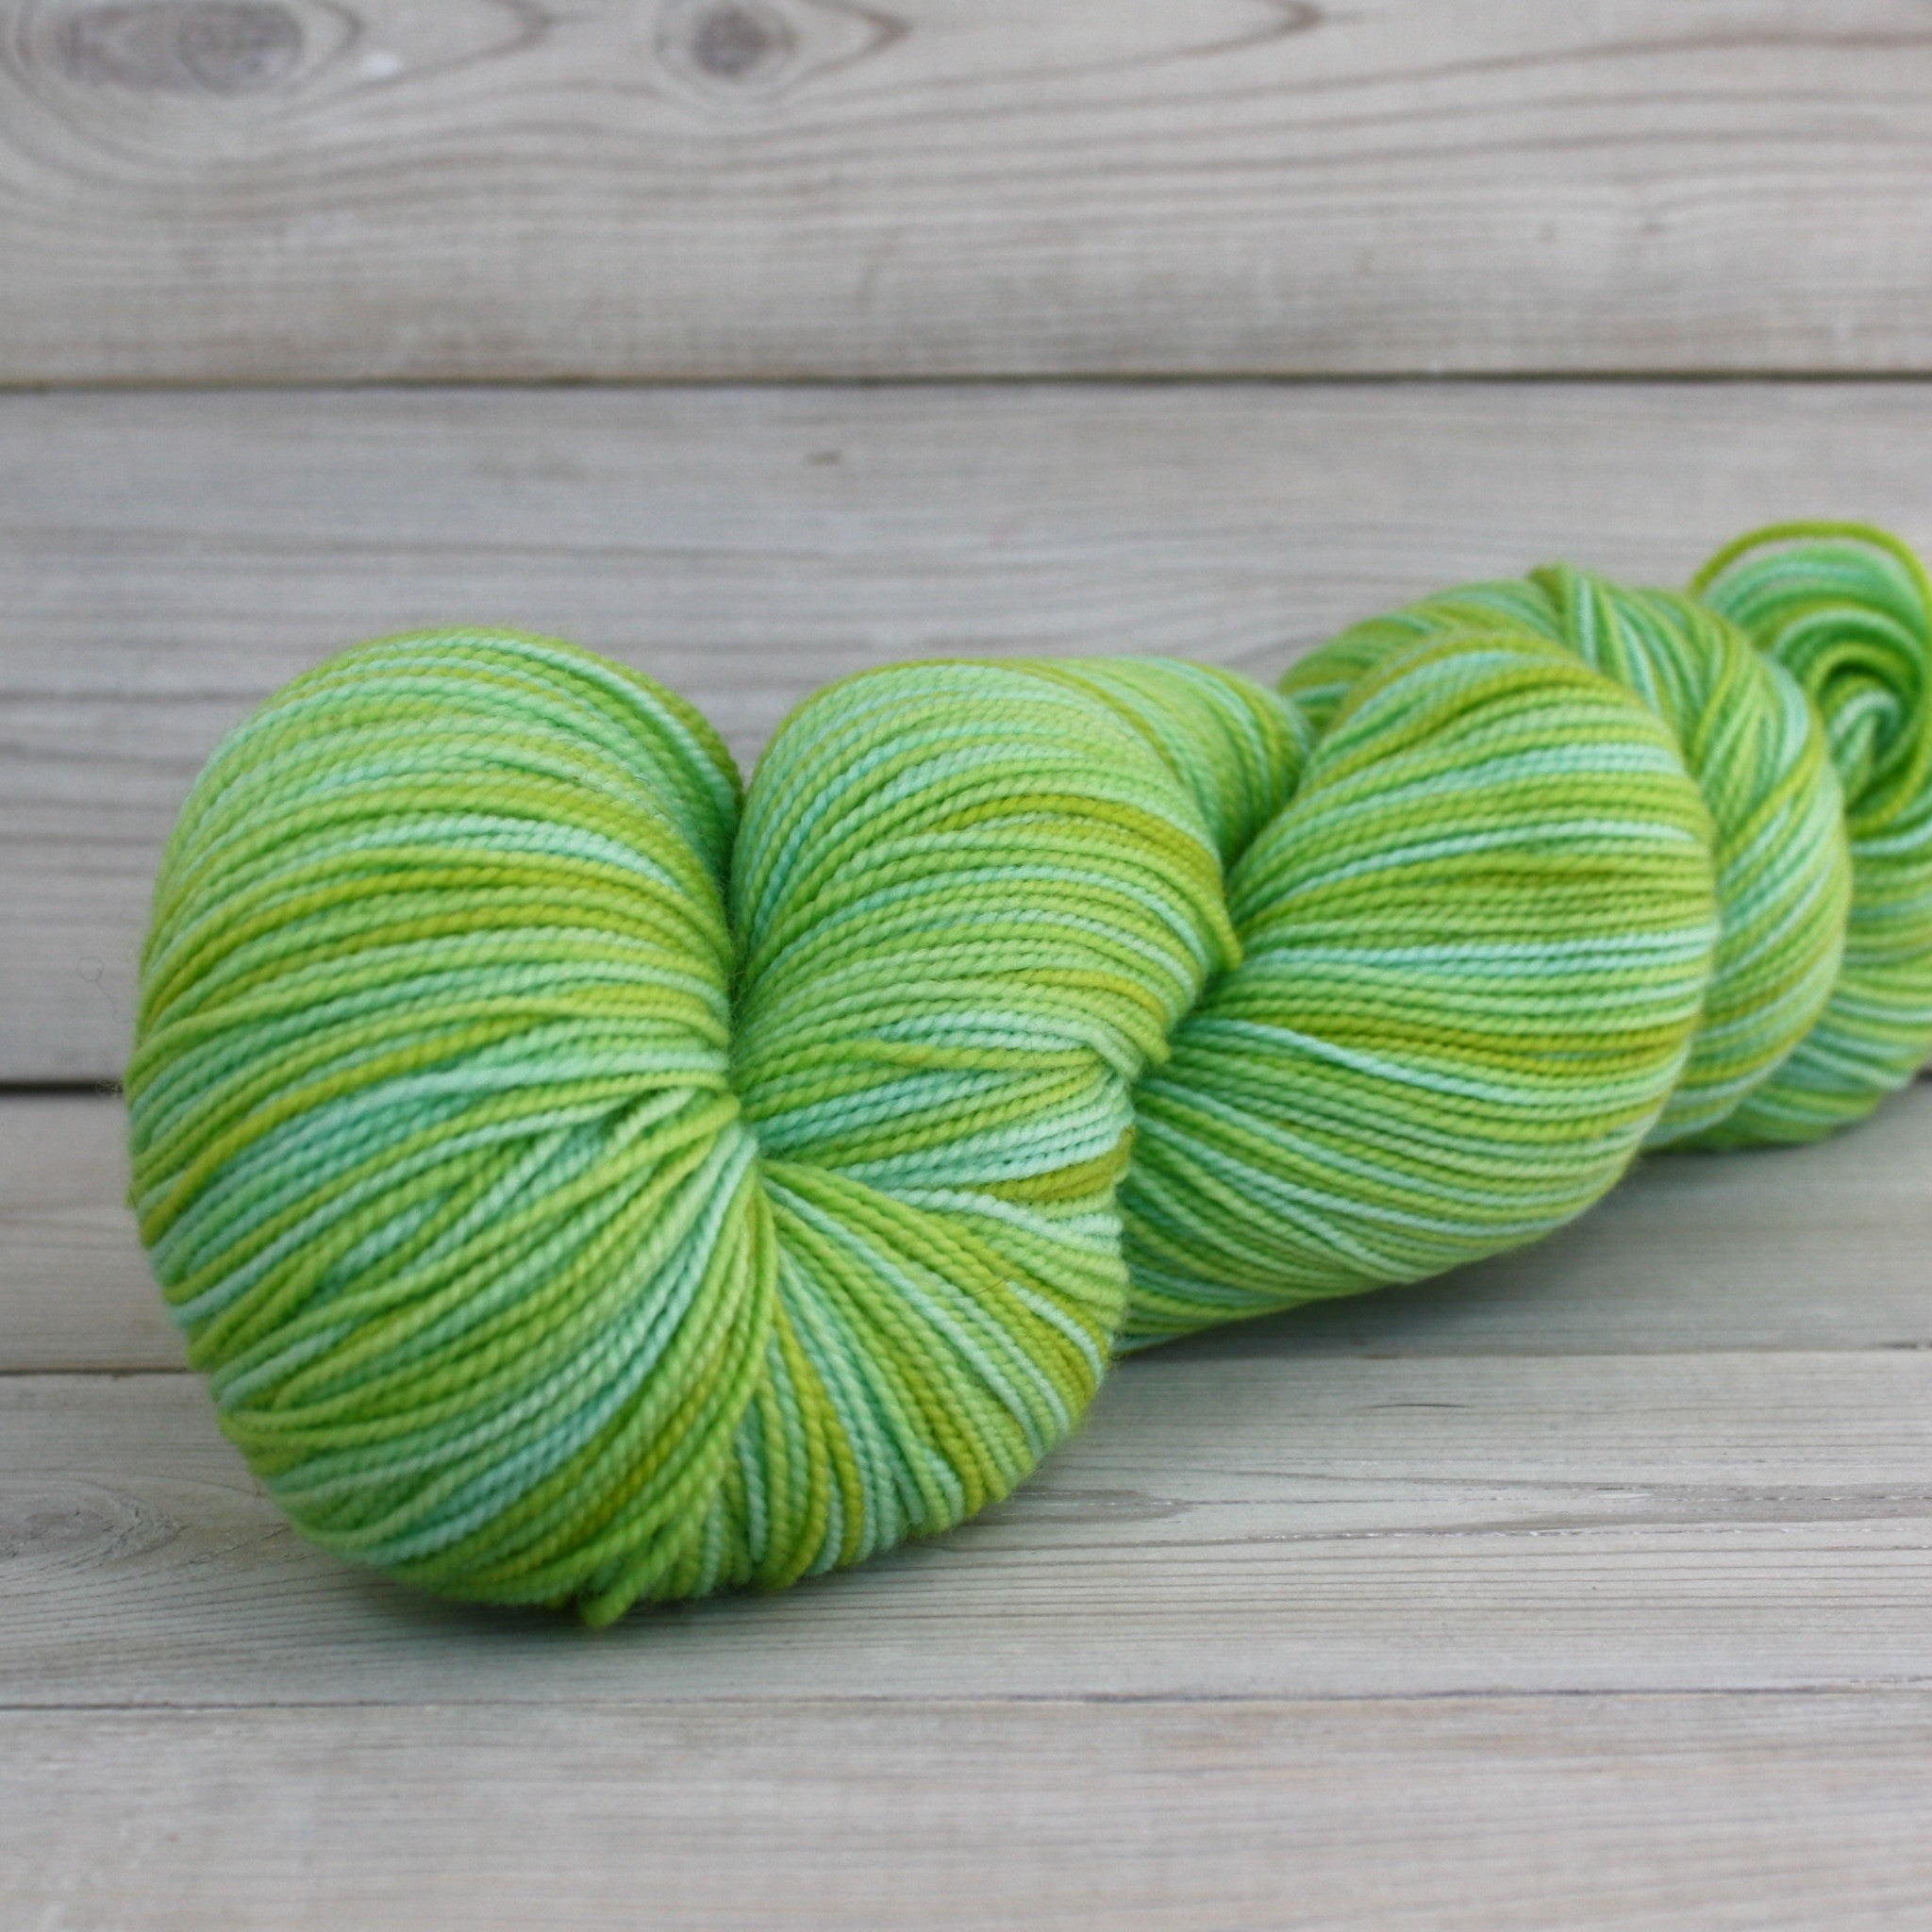 Celeste Yarn | Colorway: Bahama Village